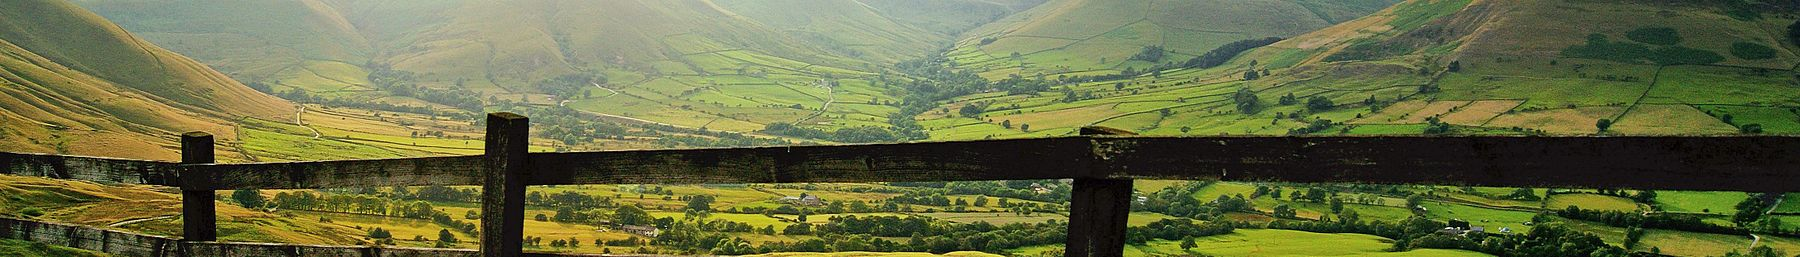 A view across the Edale valley